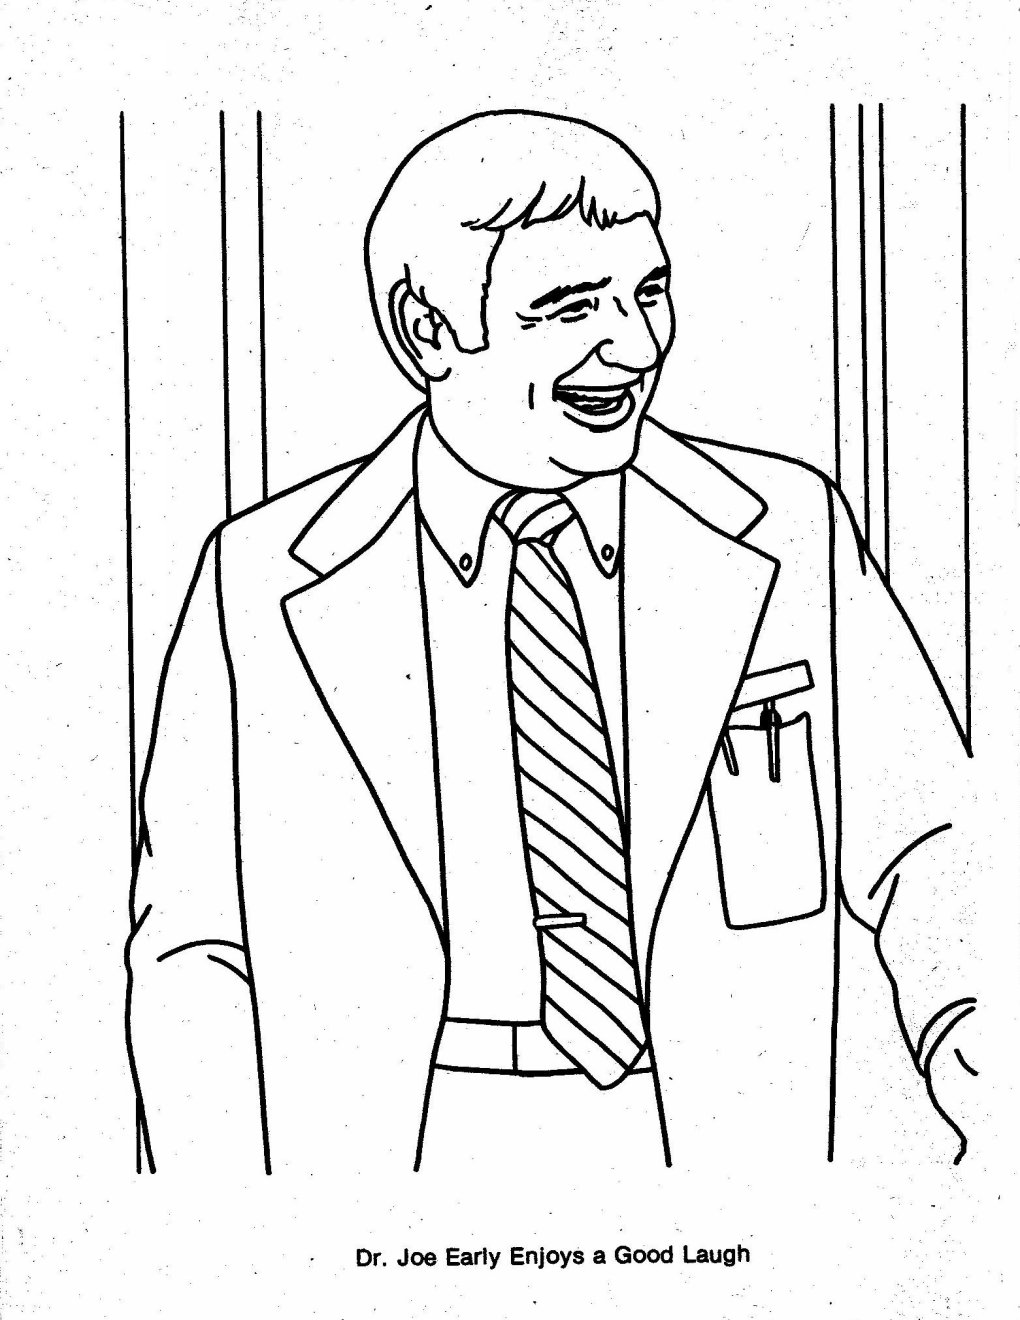 Free Coloring Pages Of 911 Emergency 911 Emergency Coloring Pages